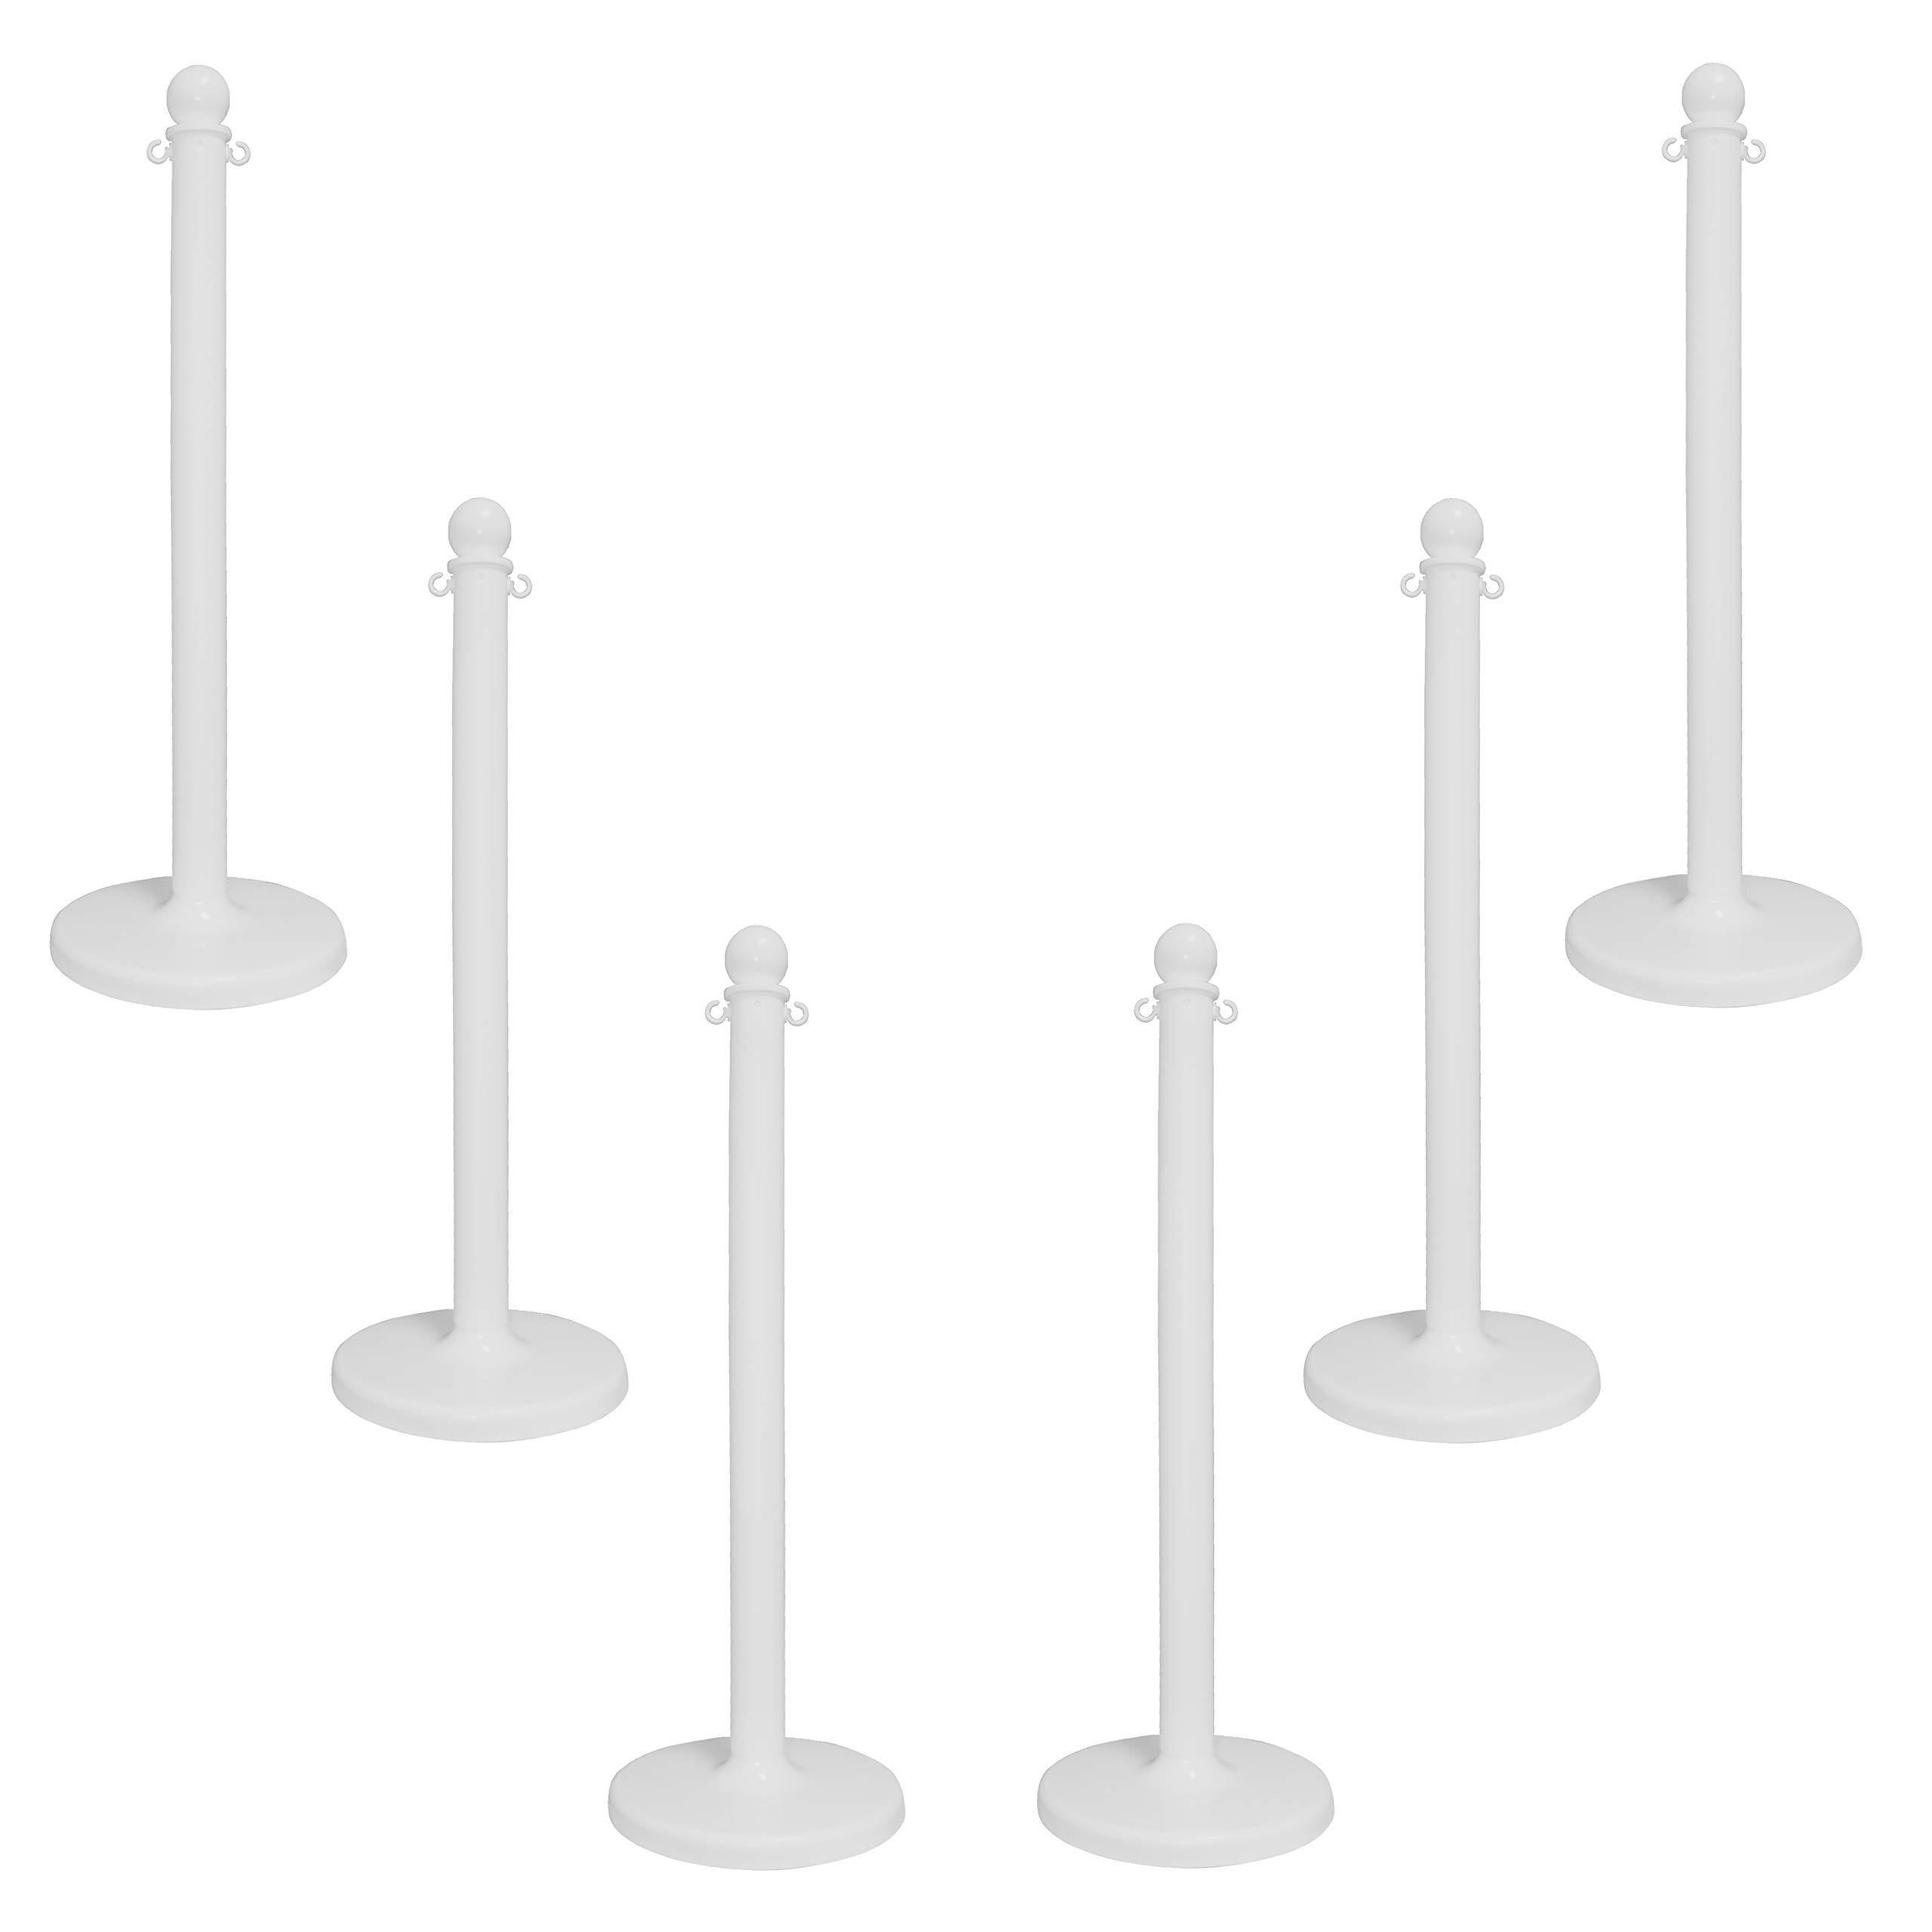 Mr. Chain 96401-6 White Stanchion, 2.5'' link x 40'' Overall Height, Pack of 6